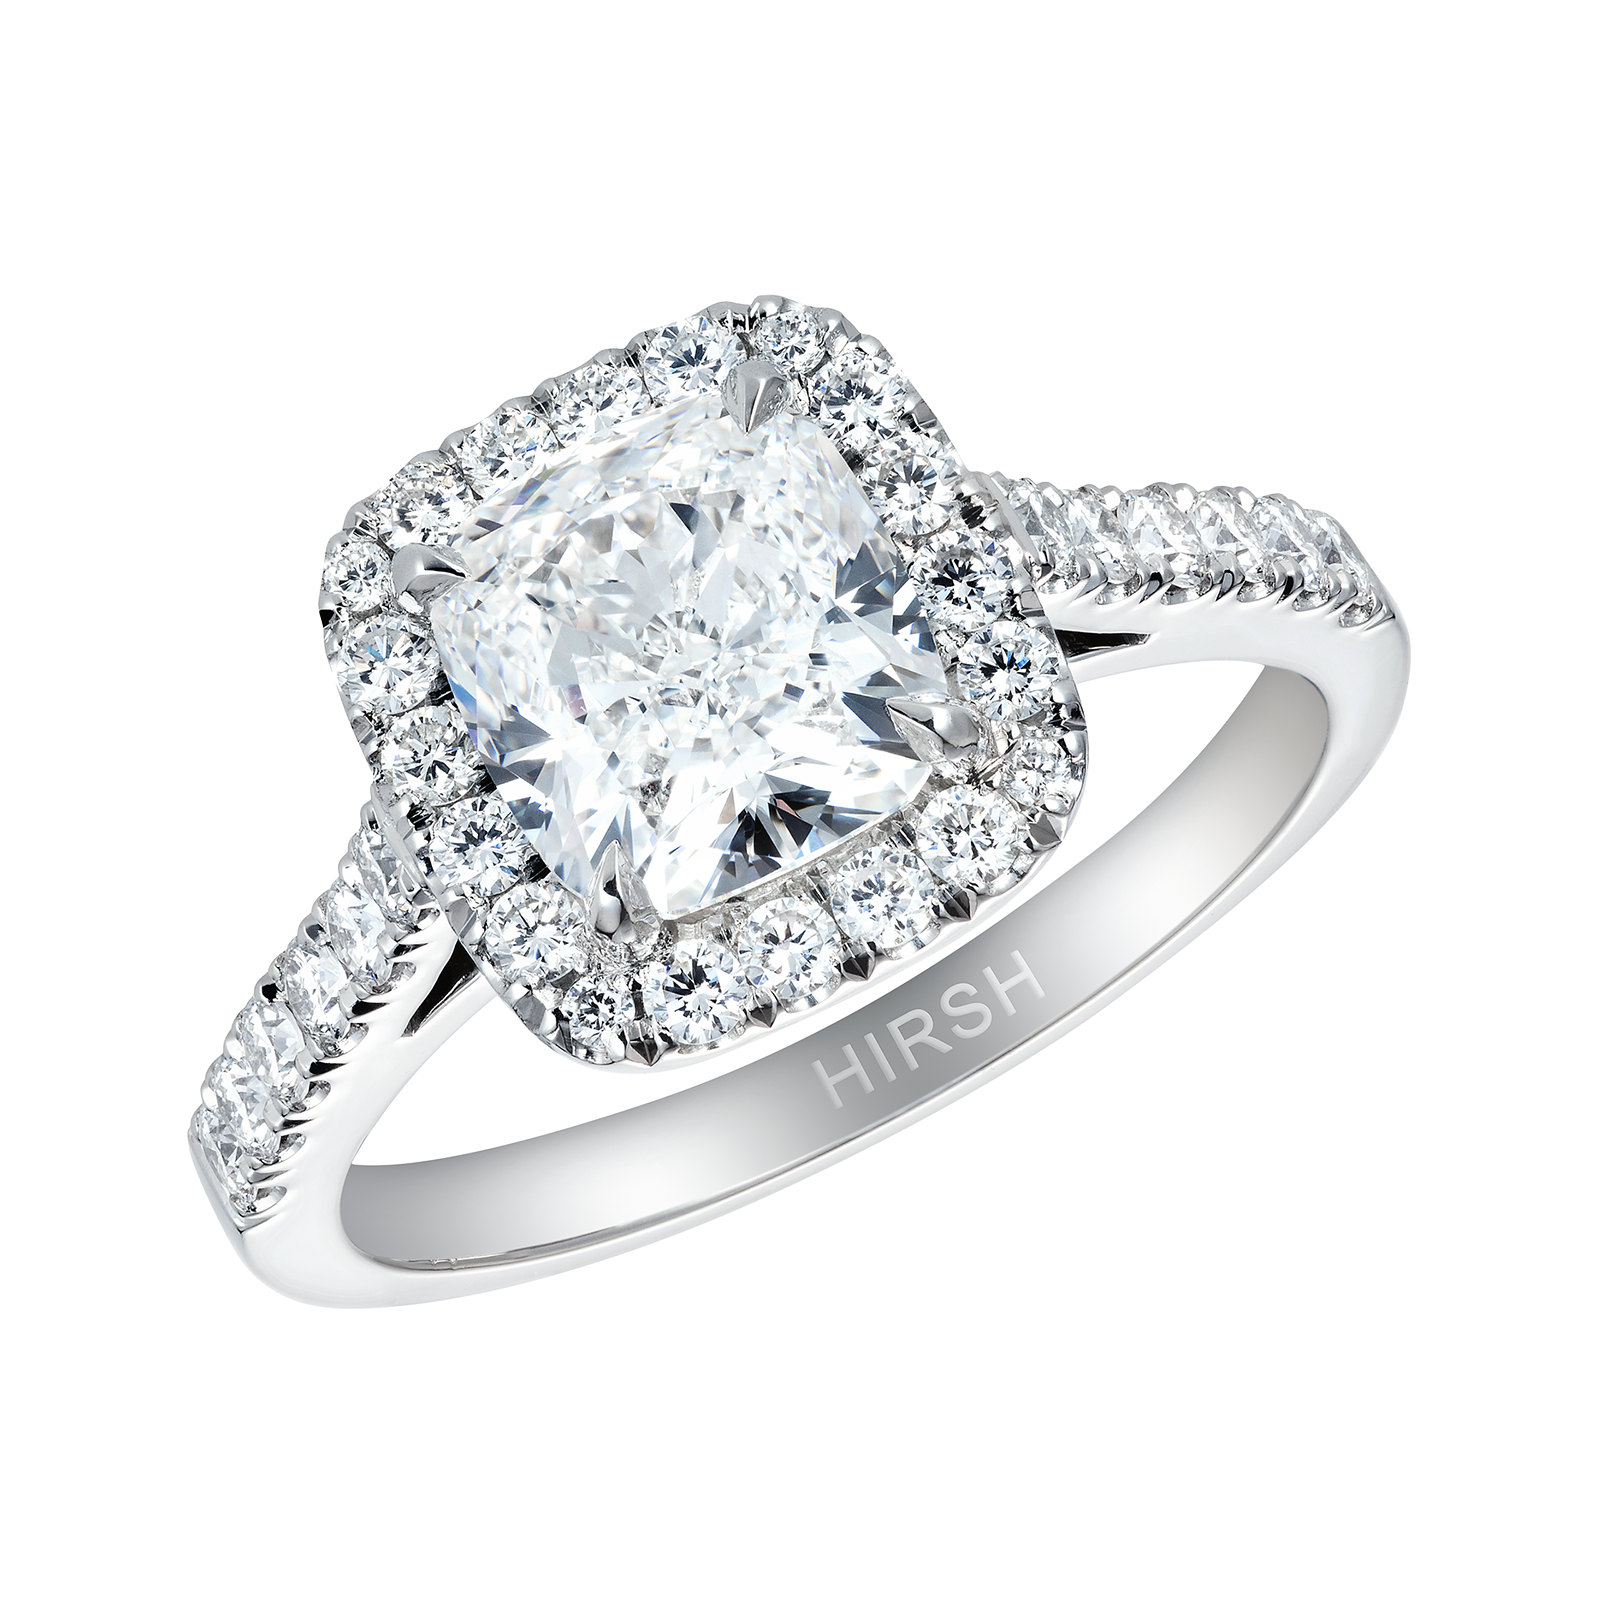 reeds wedding of ring dollar rings jewelers